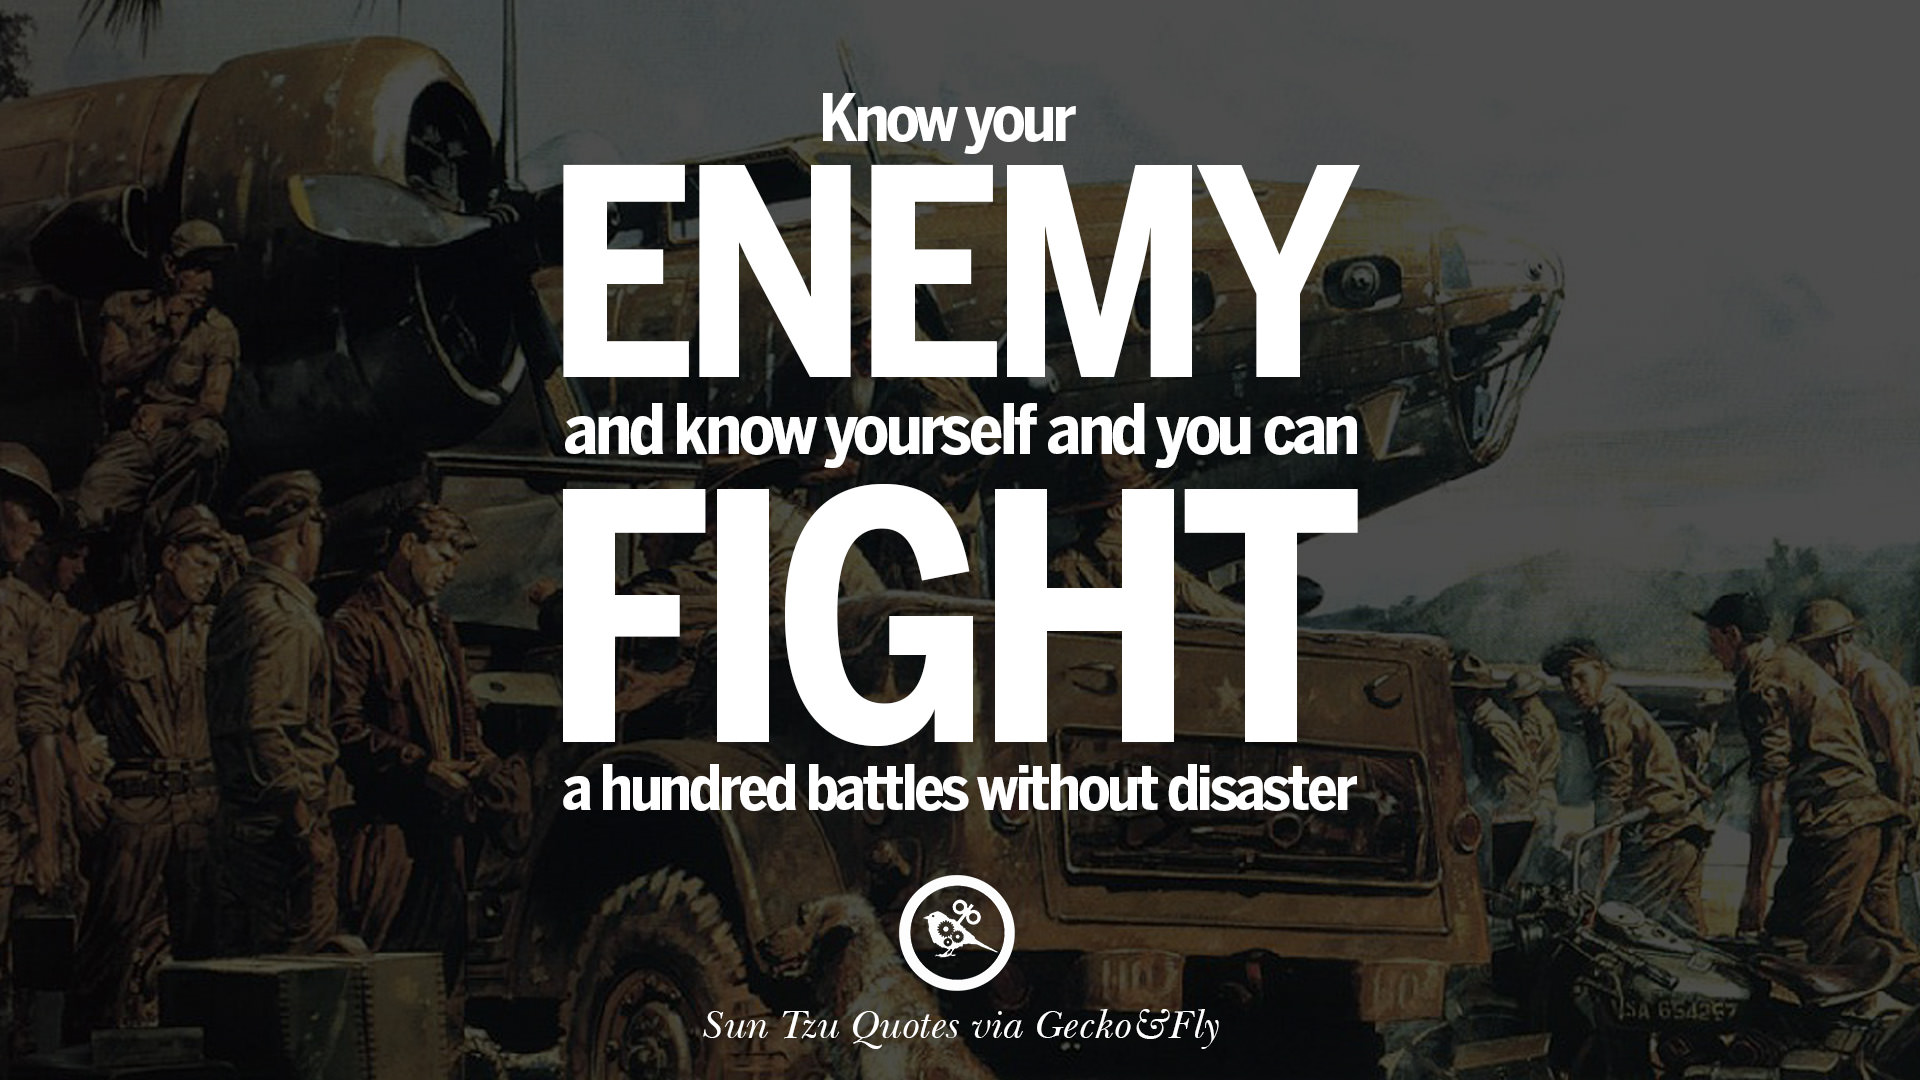 Military Excellence Quote Wallpaper 18 Quotes From Sun Tzu Art Of War For Politics Business